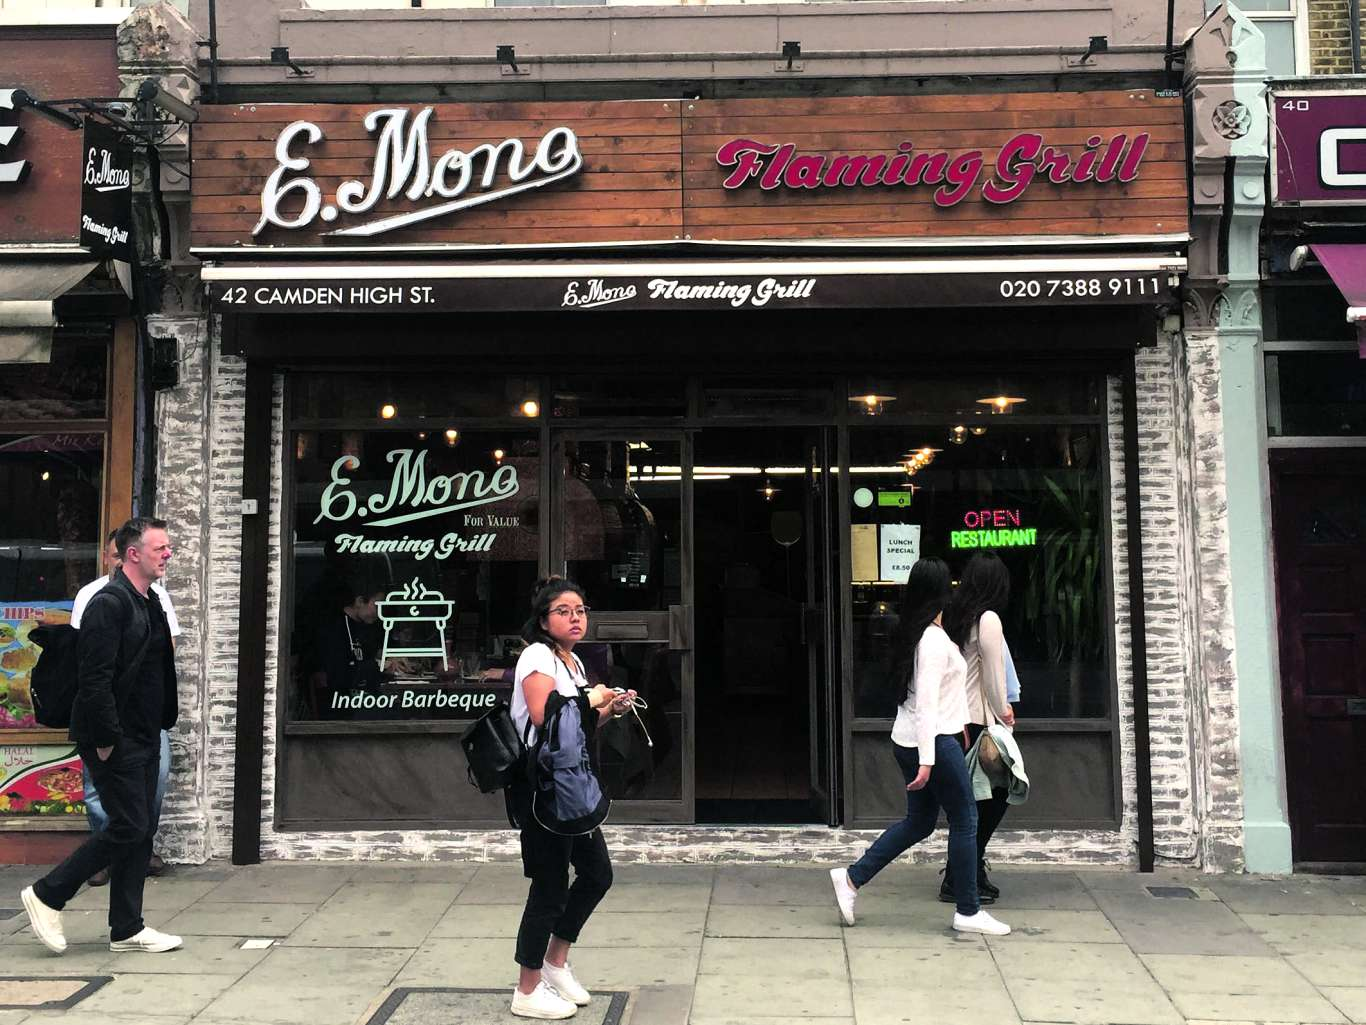 E.Mono opens its latest branch in Camden. Photo: SE